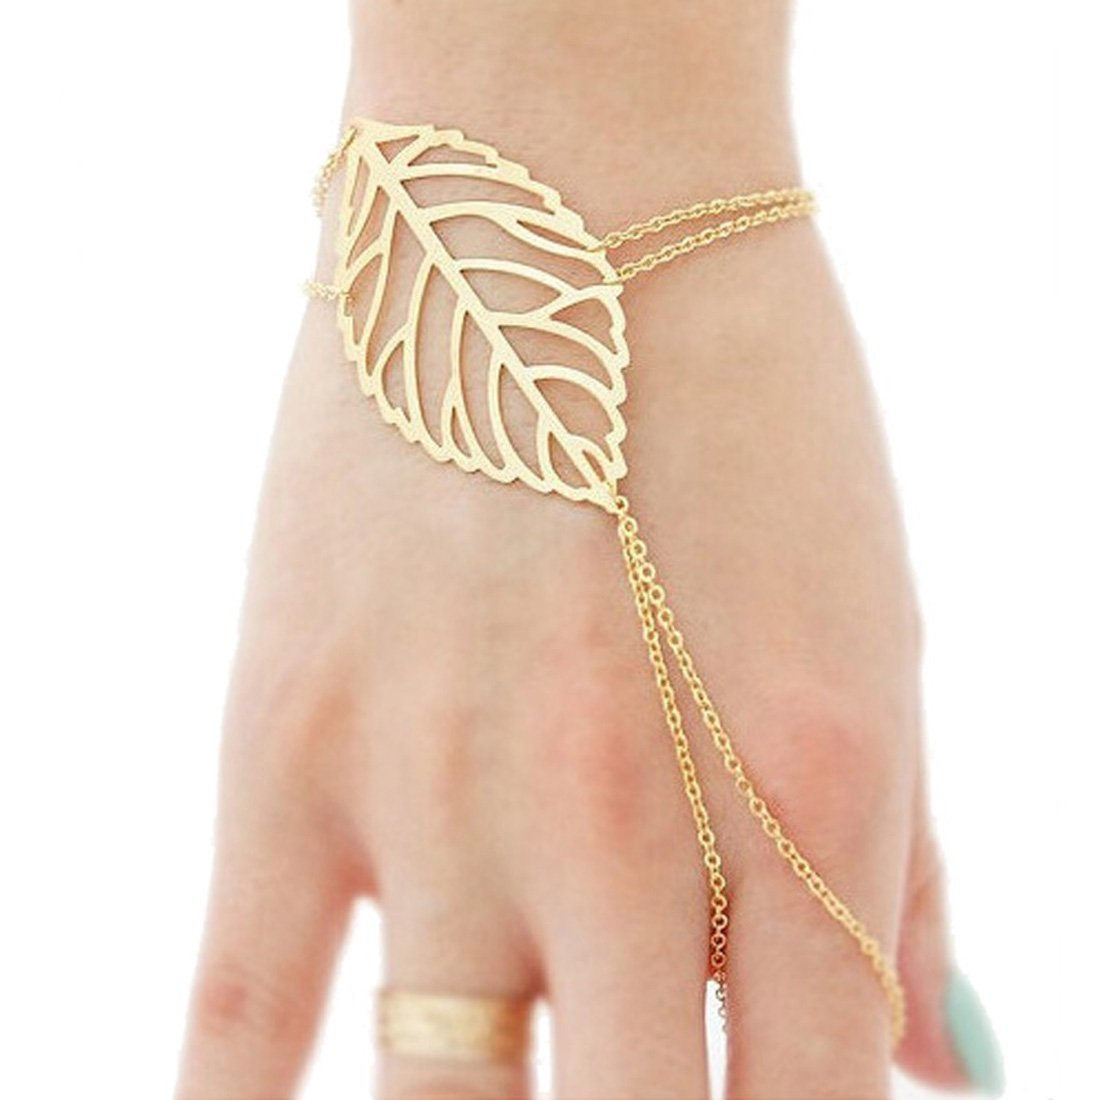 design inspiration bangles picture ideas woman and awesome best for pics fashion styles women new gold bracelet latest trends